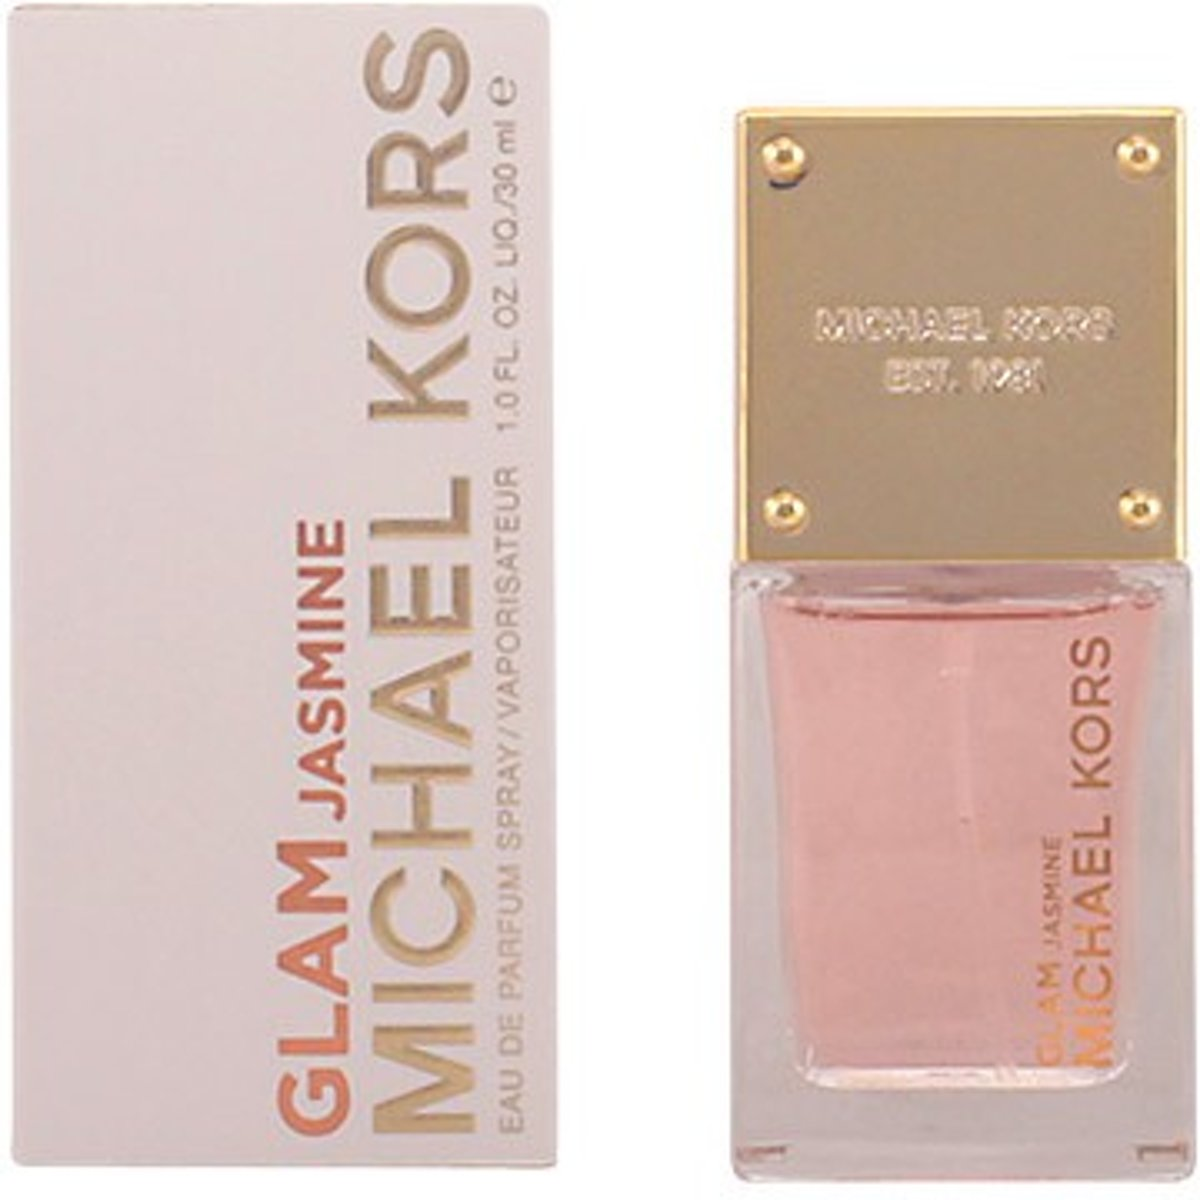 MULTI BUNDEL 2 stuks GLAM JASMINE Eau de Perfume Spray 30 ml